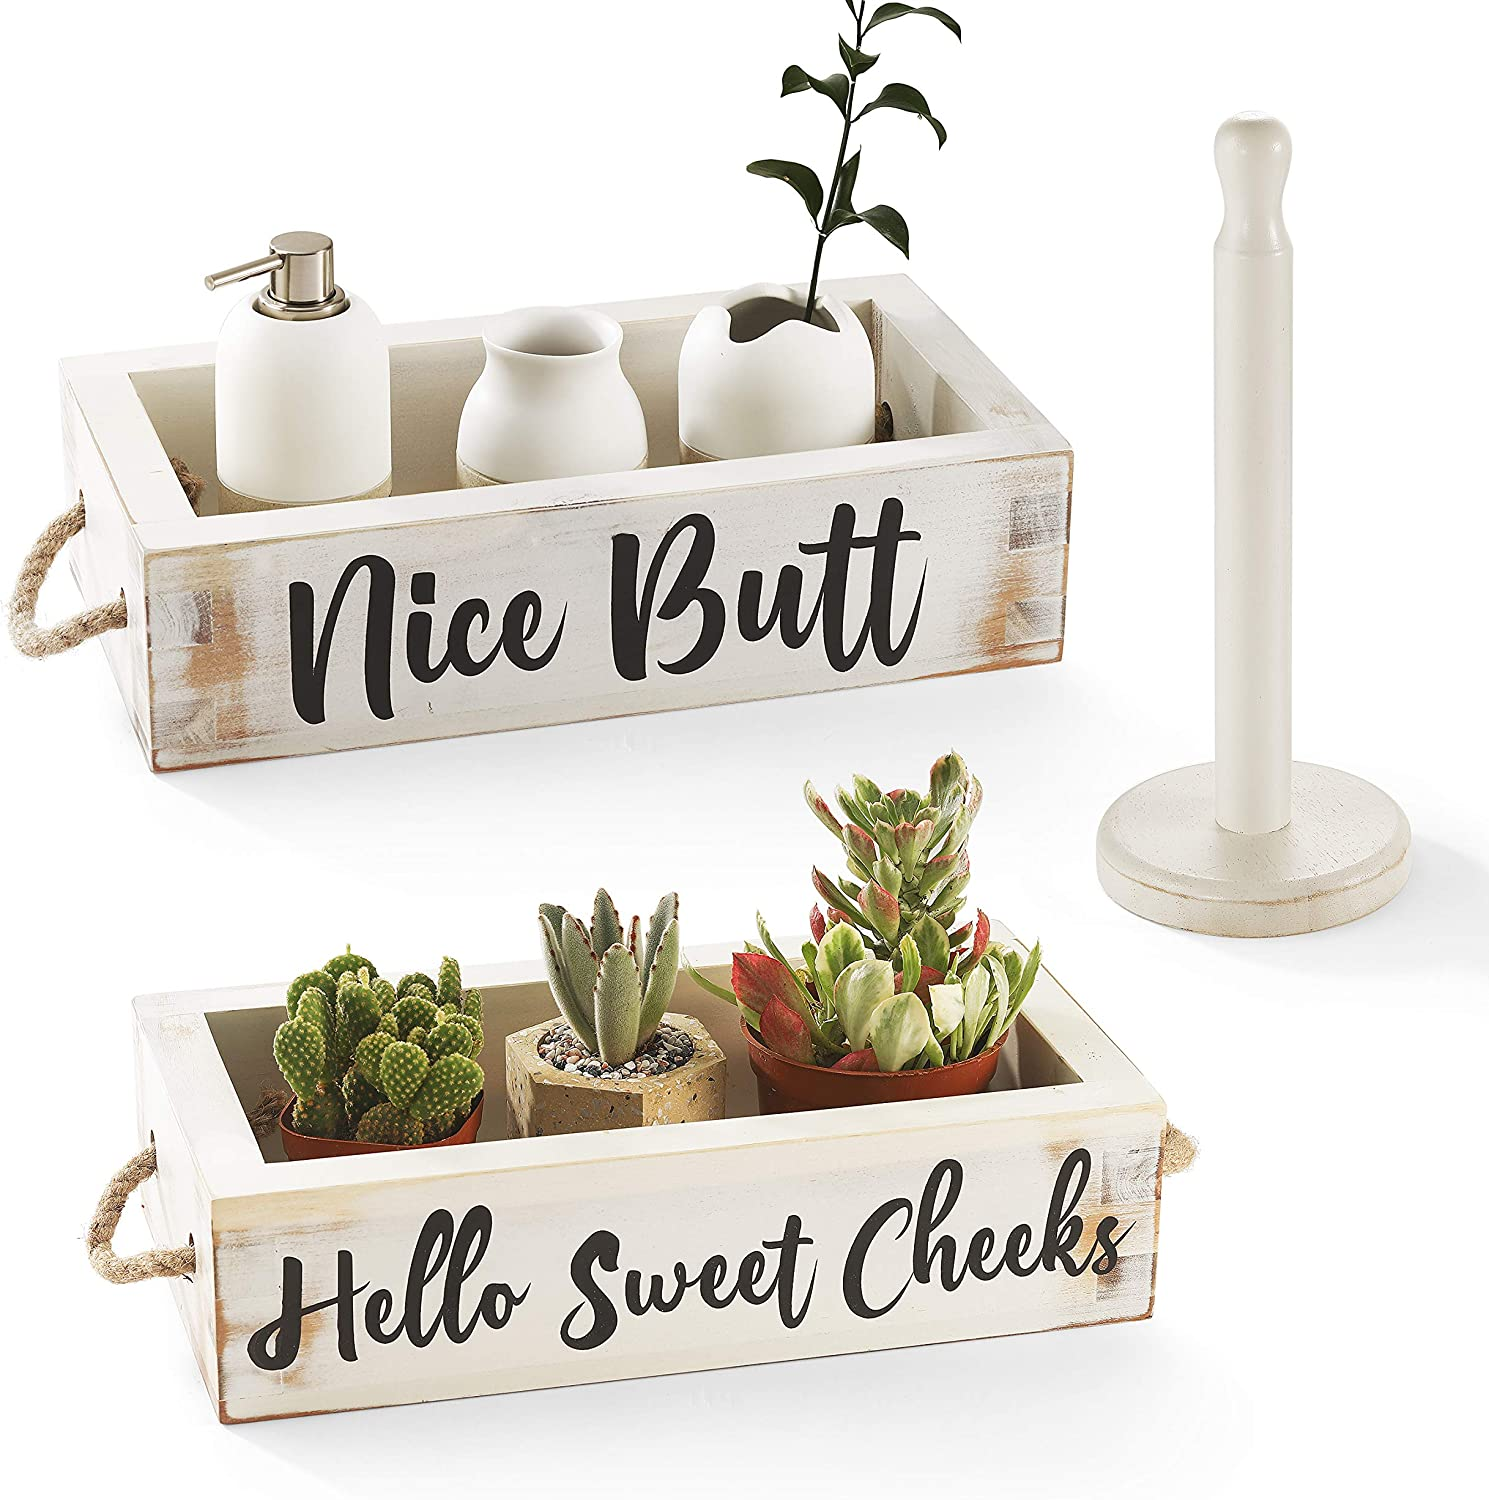 CABASAA Nice Butt Bathroom Decor Box, 2 Sided Funny Toilet Paper Holder, Farmhouse Rustic Wood Organizer, Funny Home Decor, Wooden Crate with Rope Handles (White)